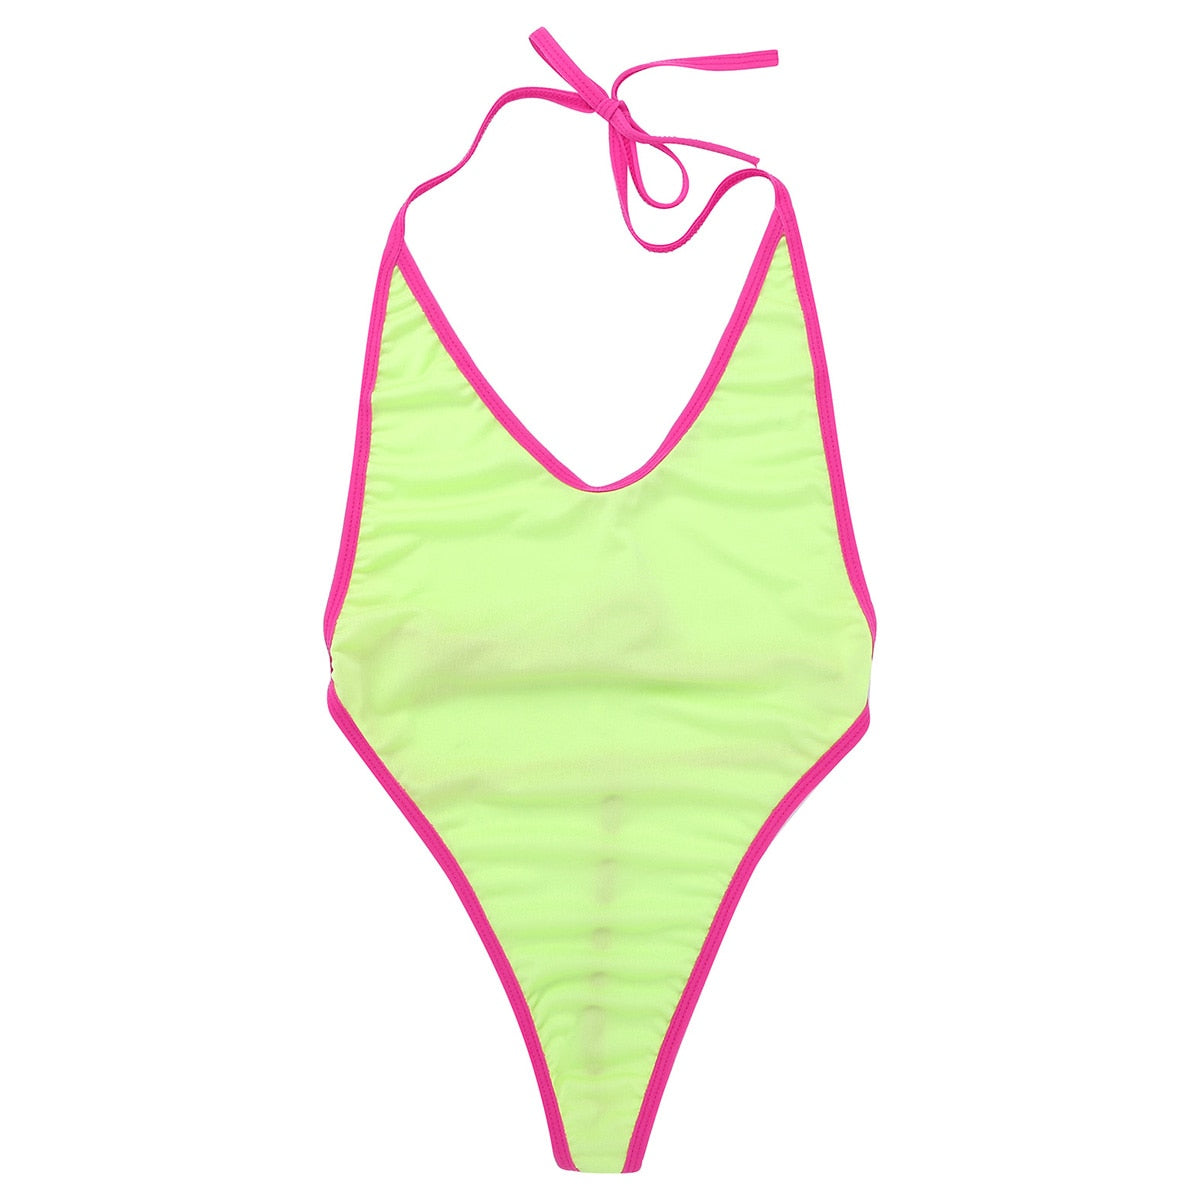 Women's Micro Monokini Swimsuit Bikini G-string Thong Swimwear One-piece Swimming Suit High Cut Mini Bikini Summer Beachwear - Smoulder Products